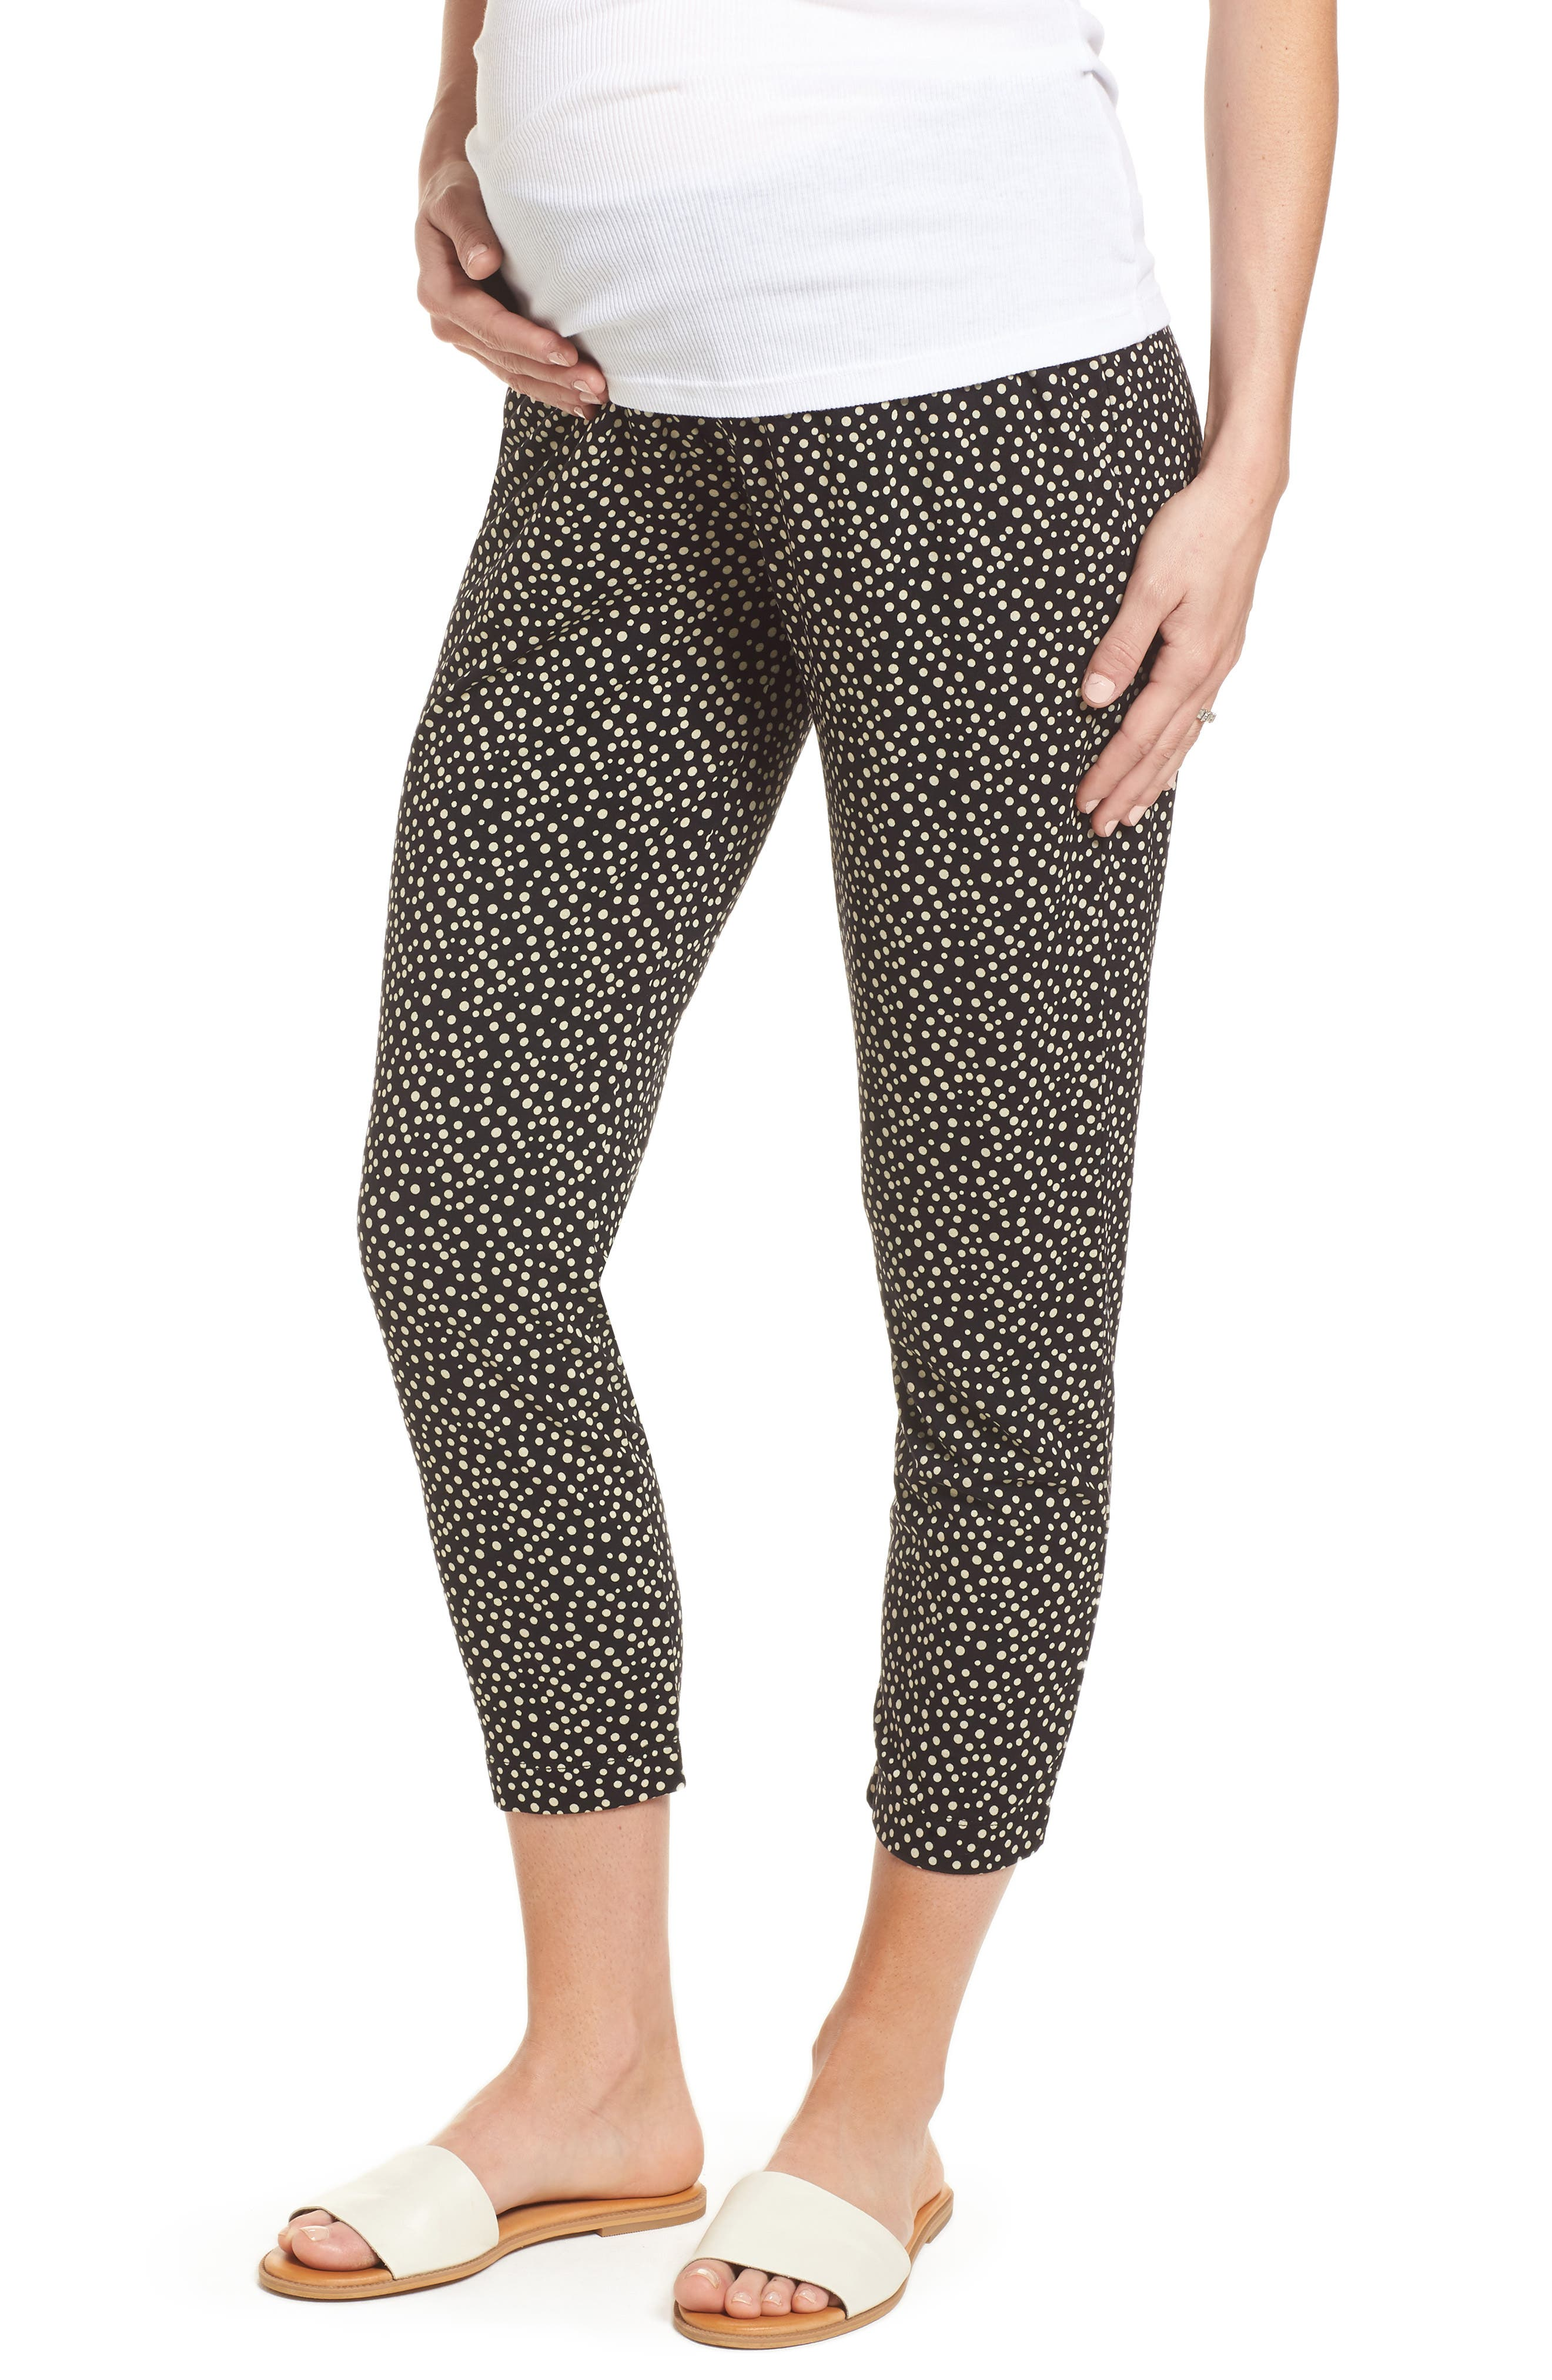 Danni Maternity Tapered Trousers,                             Main thumbnail 1, color,                             Polka Print